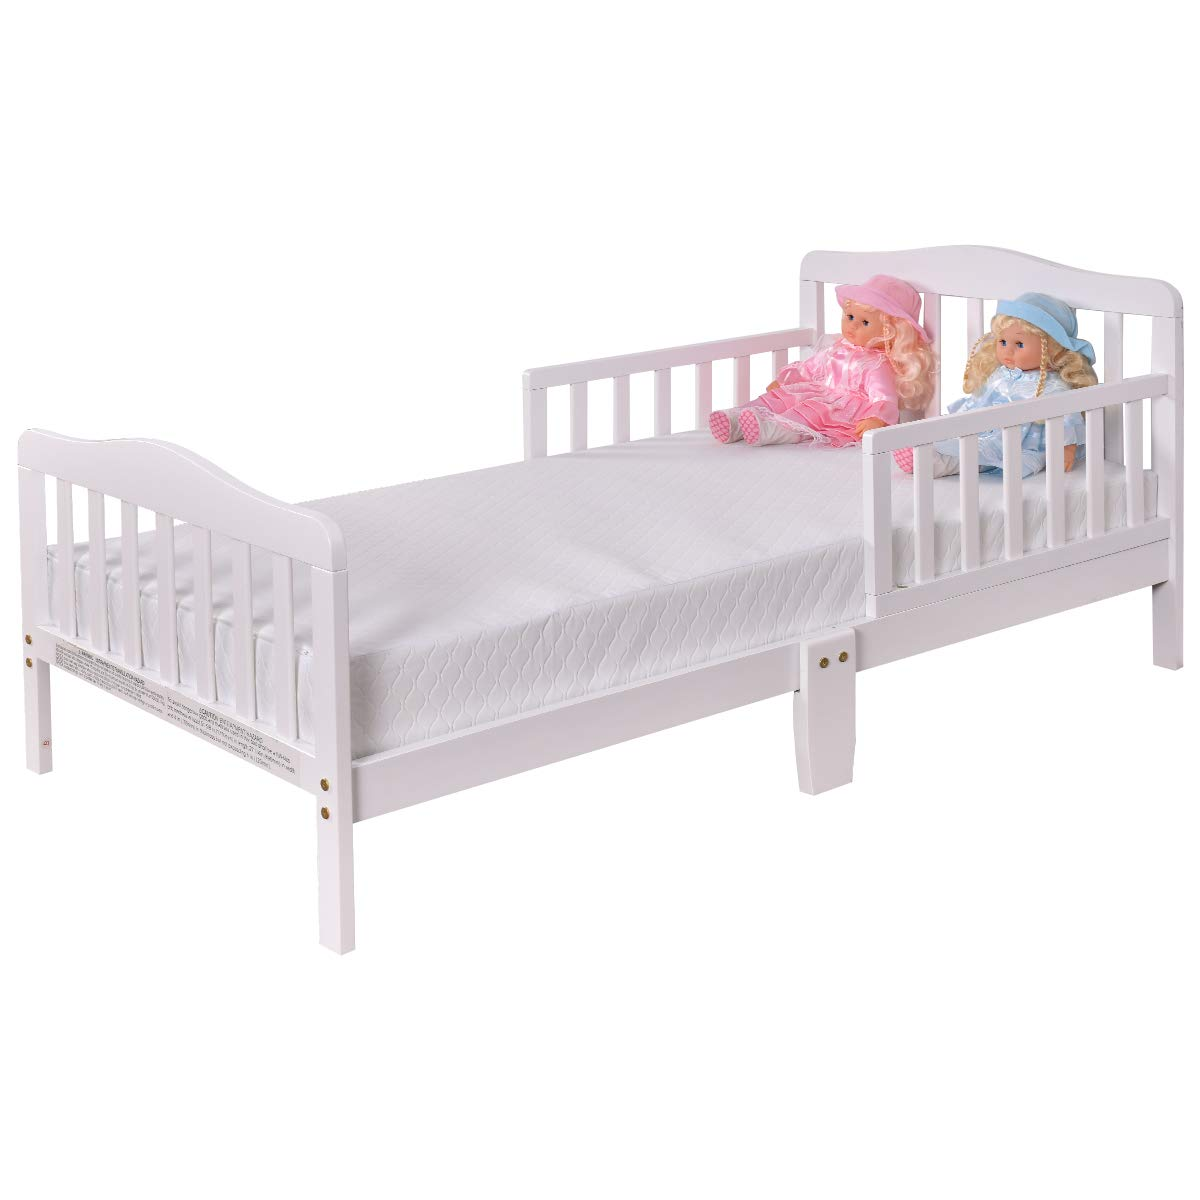 Costzon Toddler Bed, Wood Kids Bedframe Children Classic Sleeping Bedroom  Furniture w/Safety Rail Fence (White)